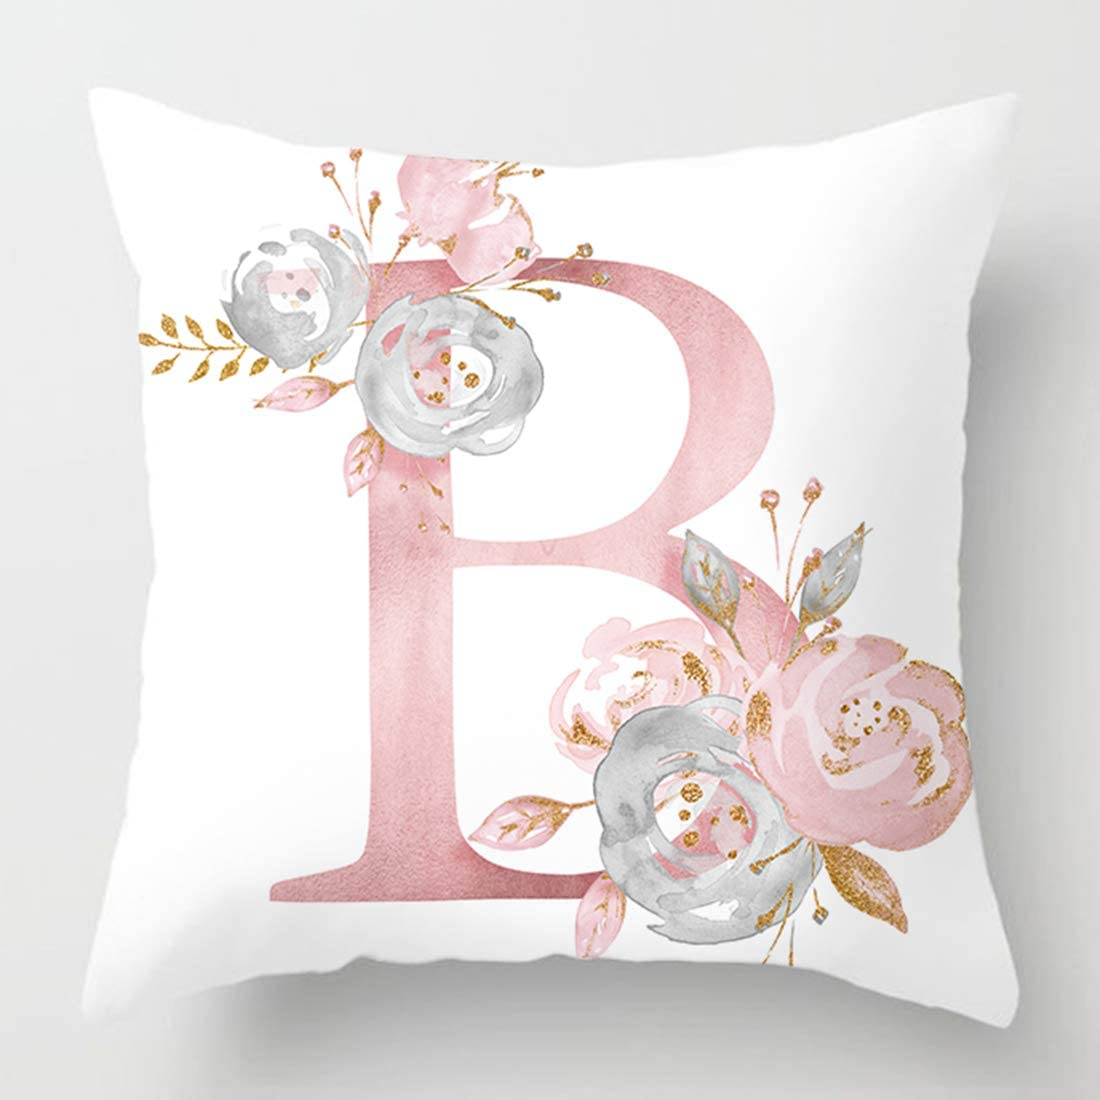 vctops Flowers Printed Throw Pillow Covers Alphabet Decorative Pillow Cases ABC Letter Cushion Covers 18 X 18 Inch Square Pillow Protectors for Sofa Couch Bedroom White B